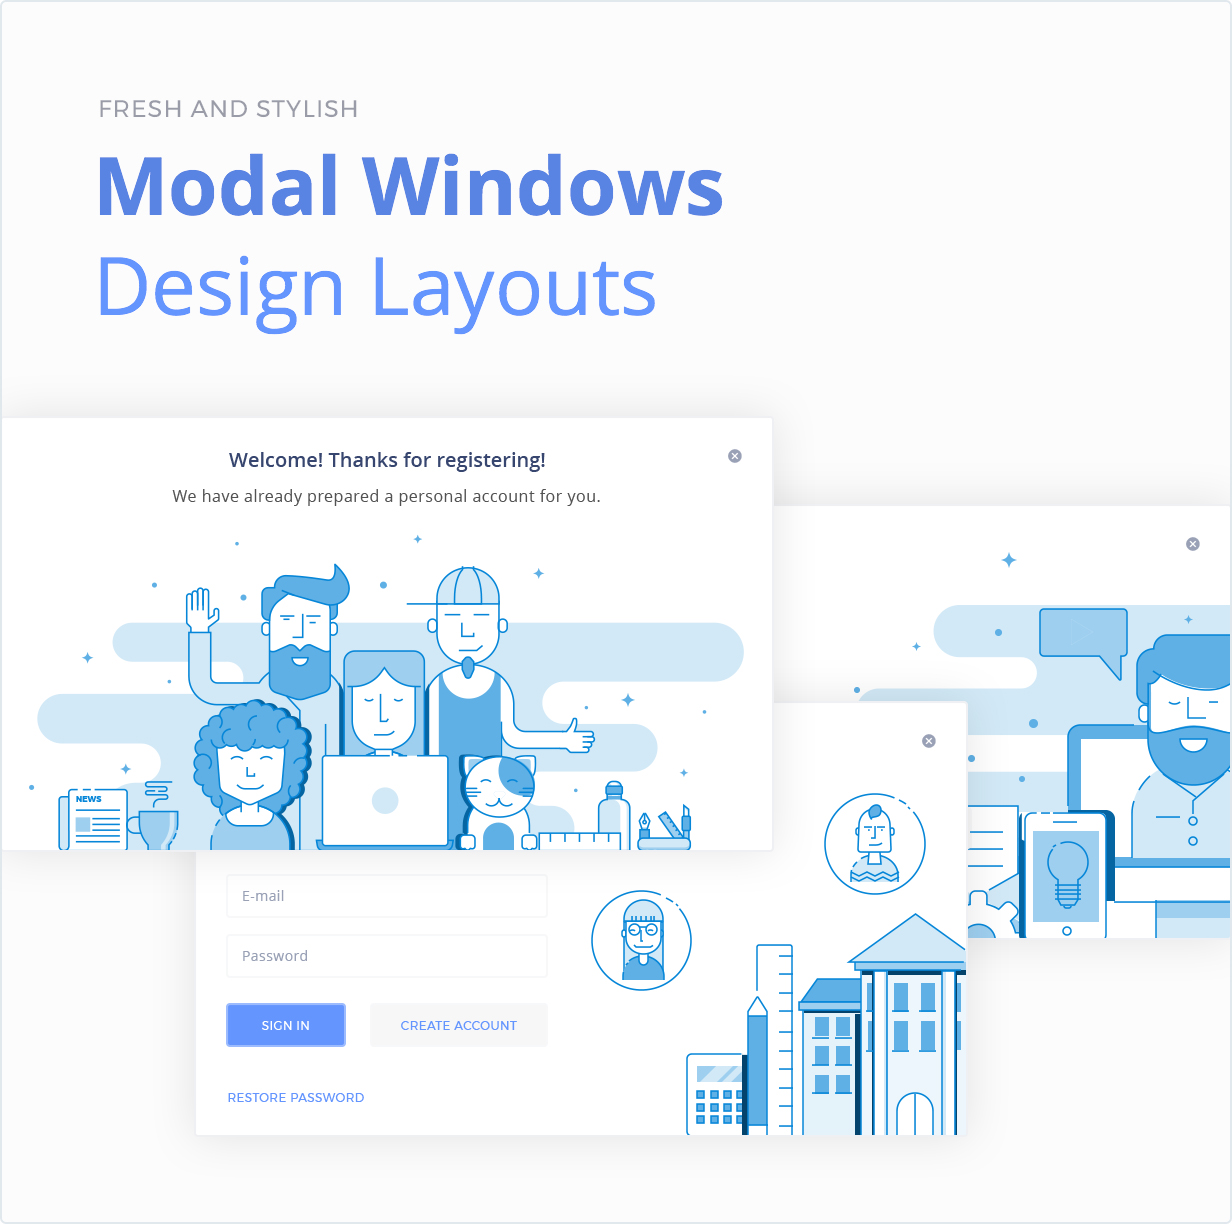 Modal Windows Design Layouts